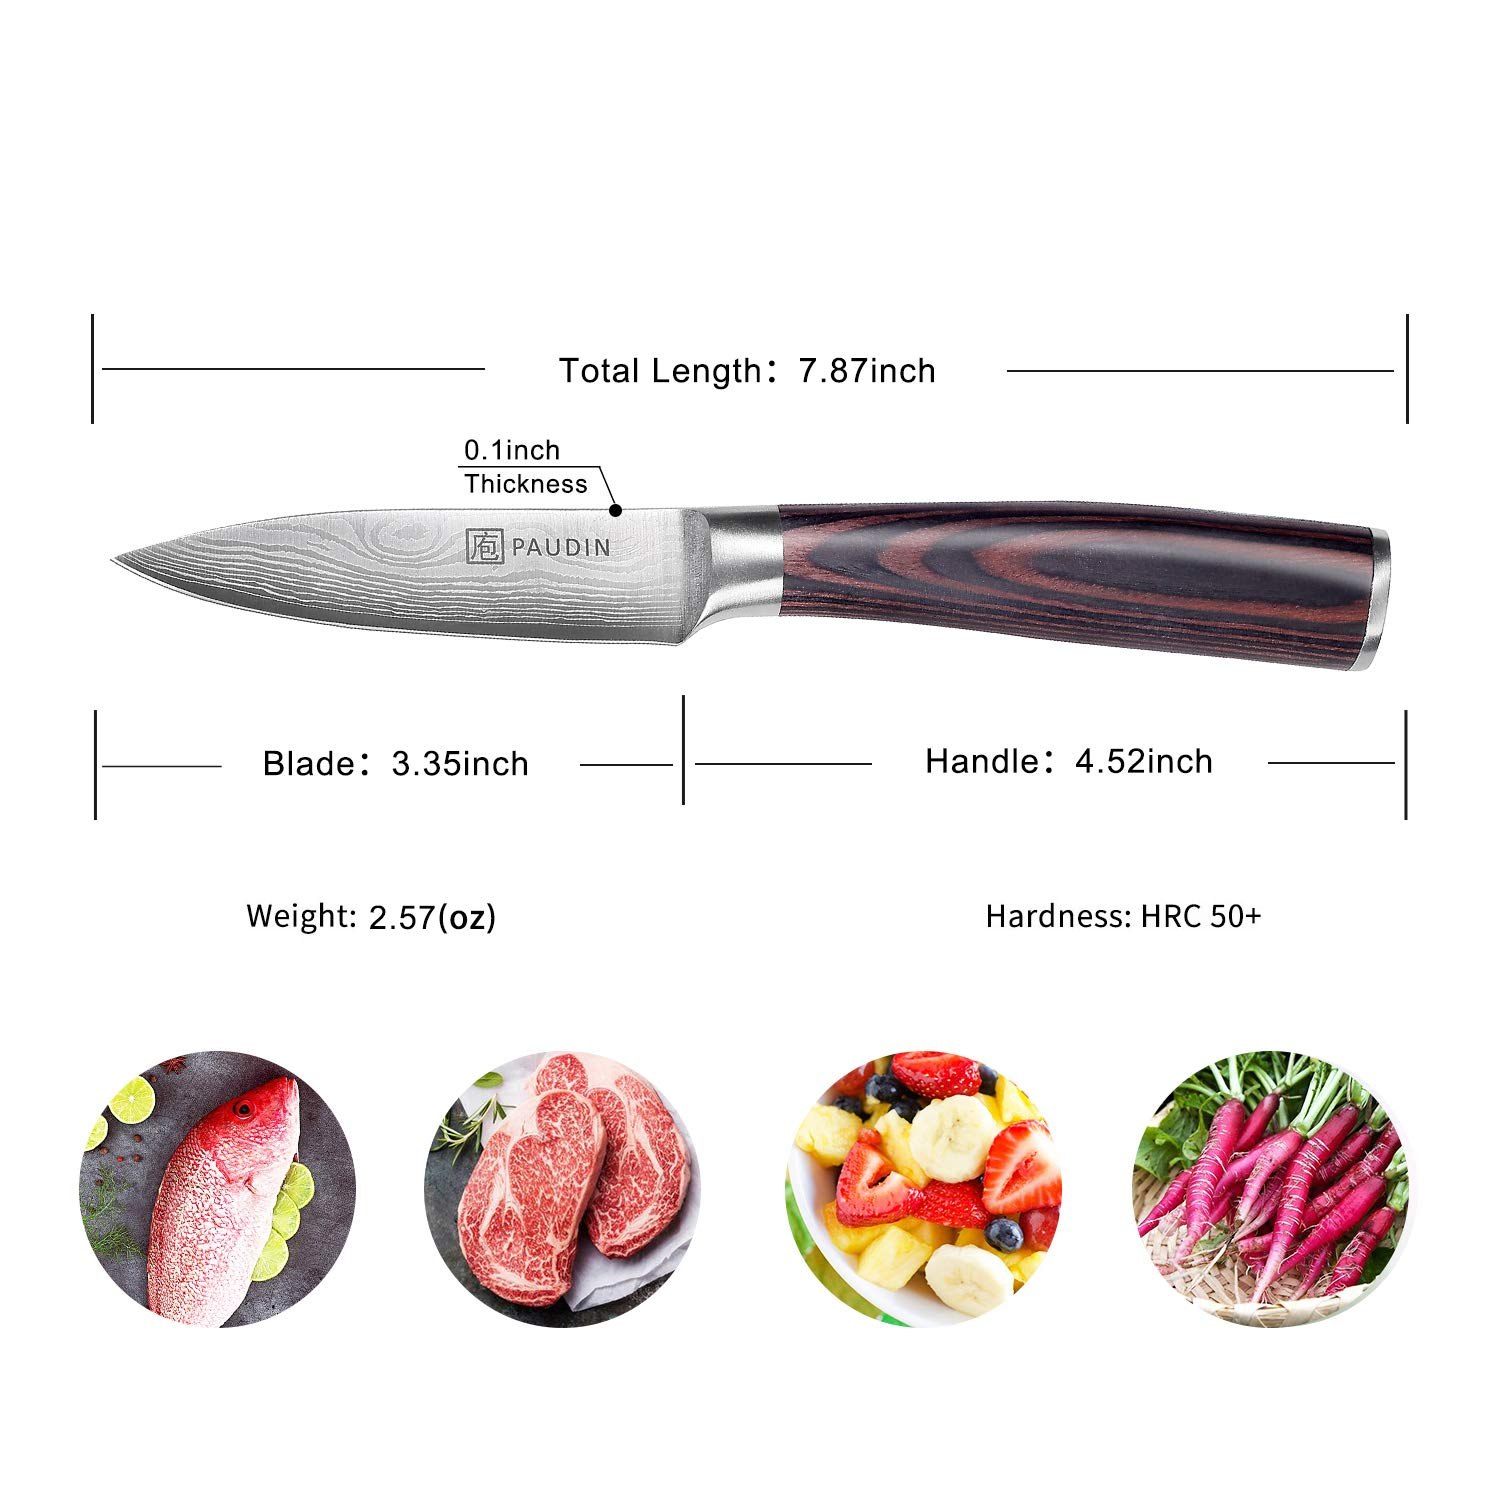 Paring Knife - PAUDIN 3.5 Inch Kitchen Knife N8 German High Carbon Stainless Steel Knife, Fruit and Vegetable Cutting Chopping Carving Knives by PAUDIN (Image #7)